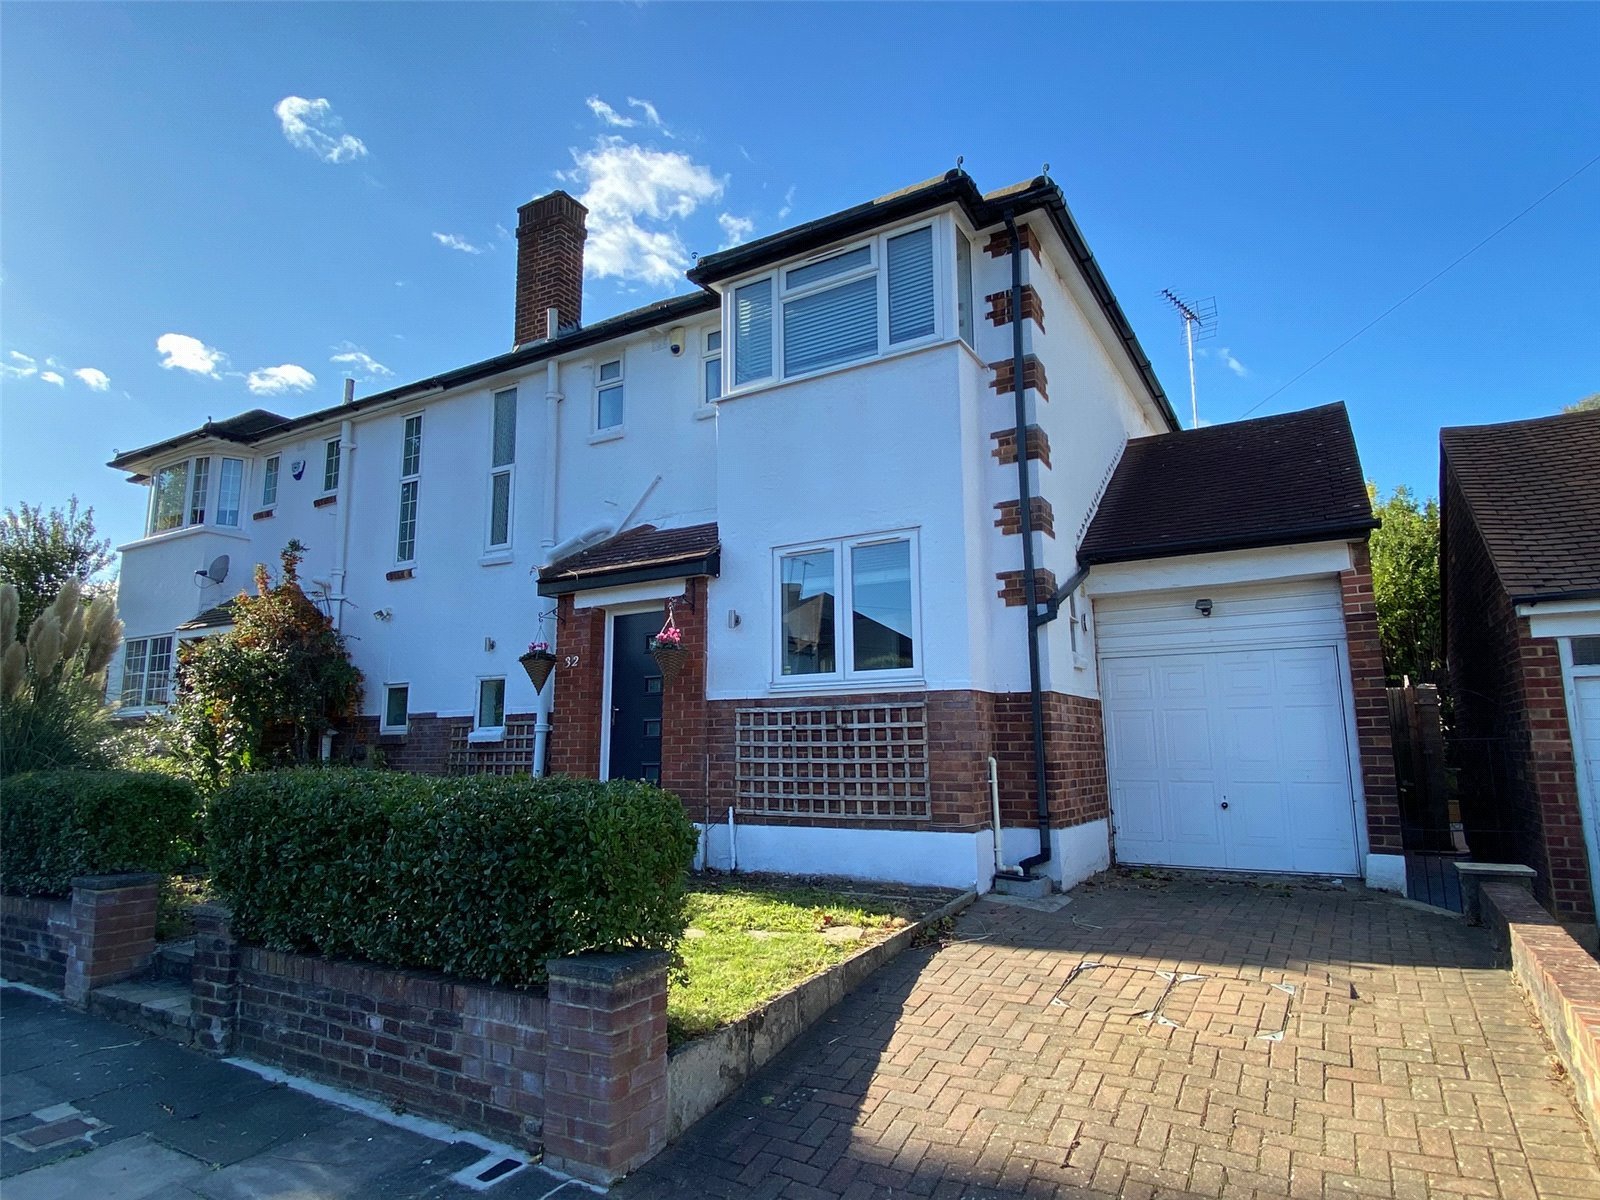 3 bed house for sale in High Barnet, EN5 1AL 0